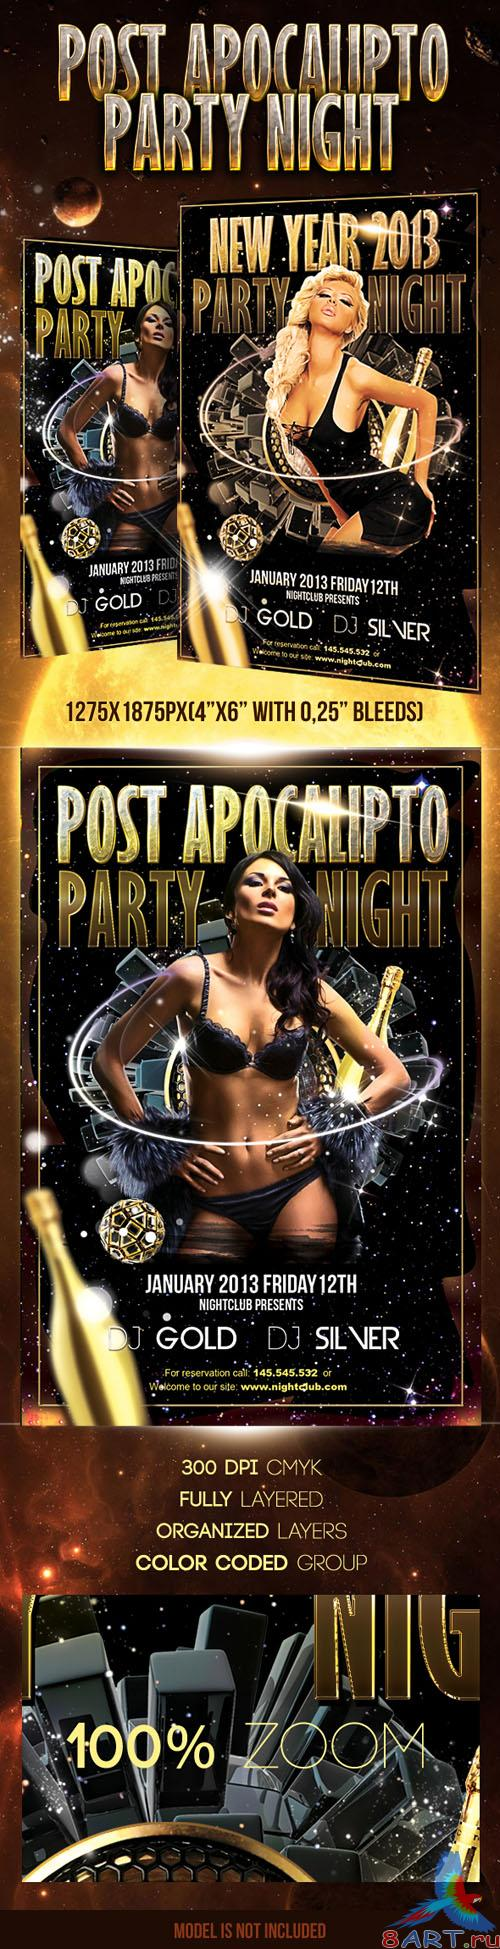 Post Apocalypto Party Flayer/Poster PSD Template